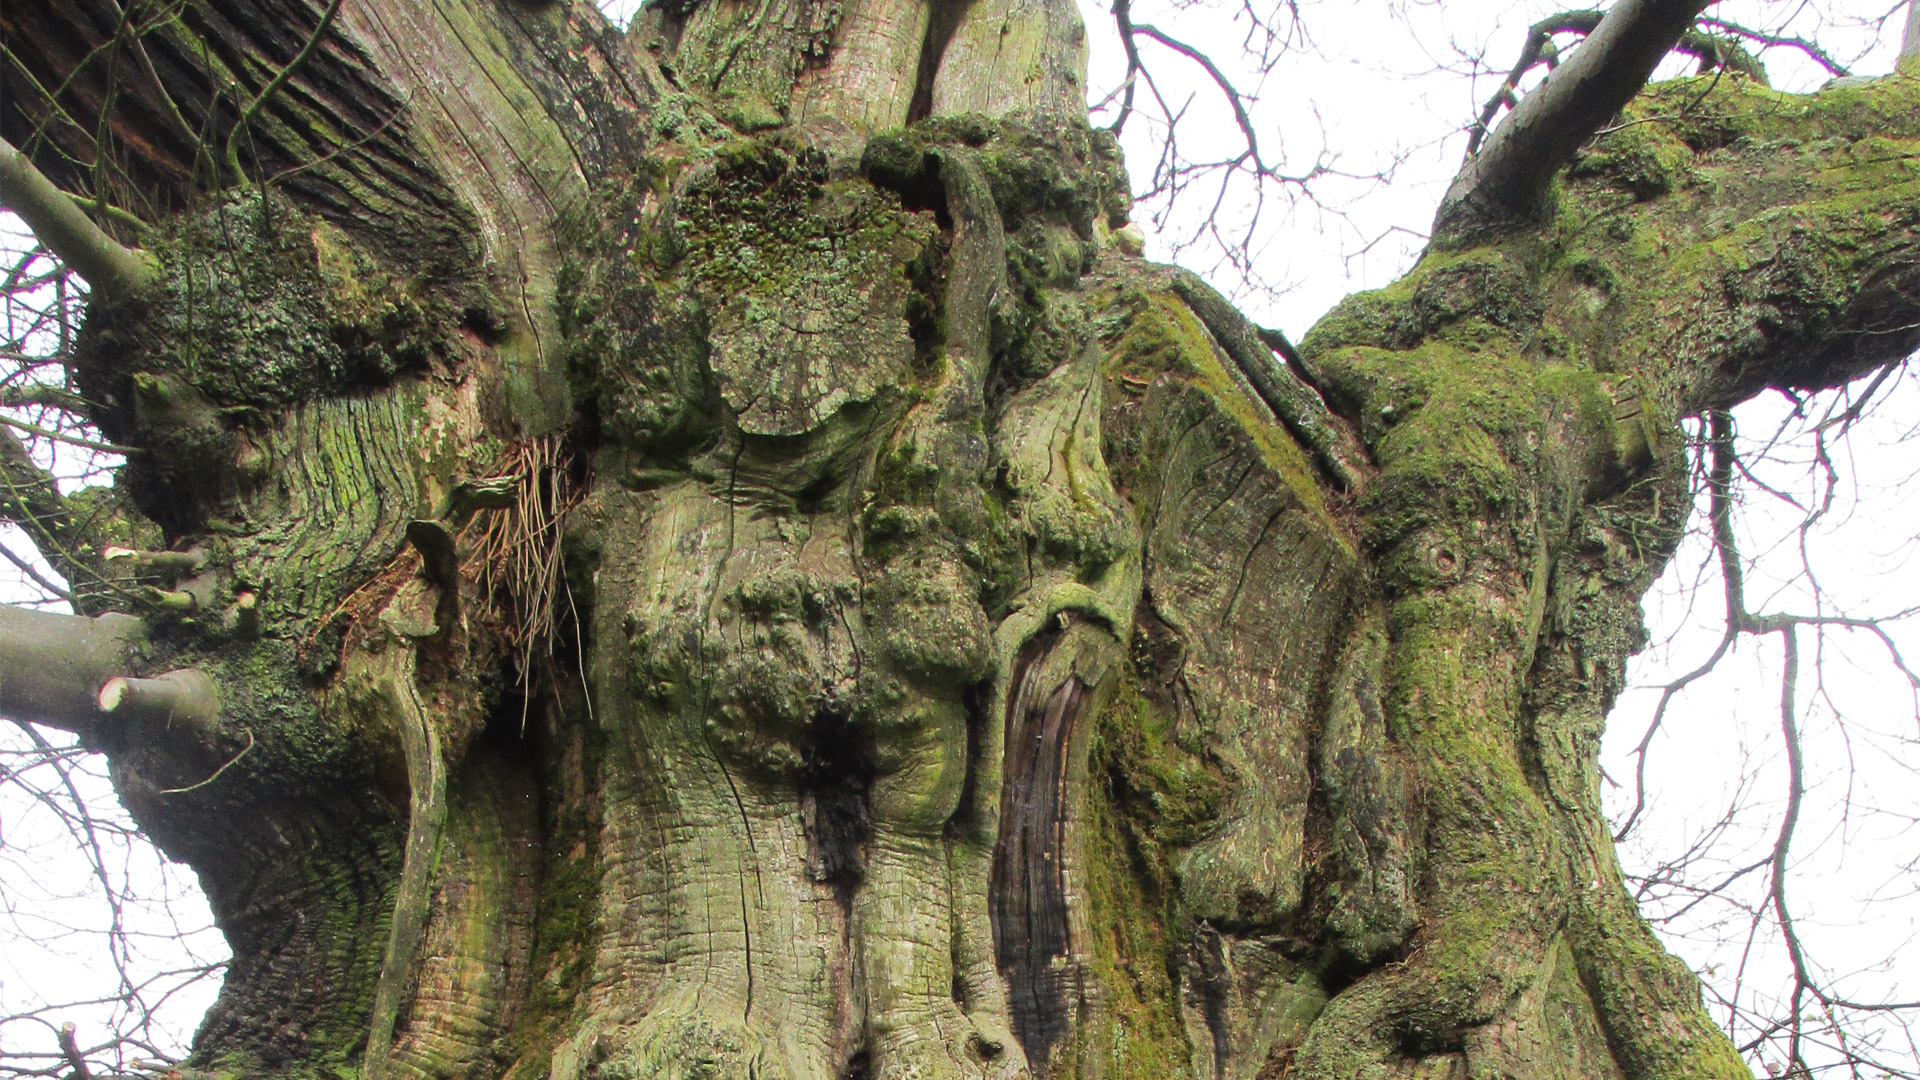 The Dunipace Sweet Chestnut Tree